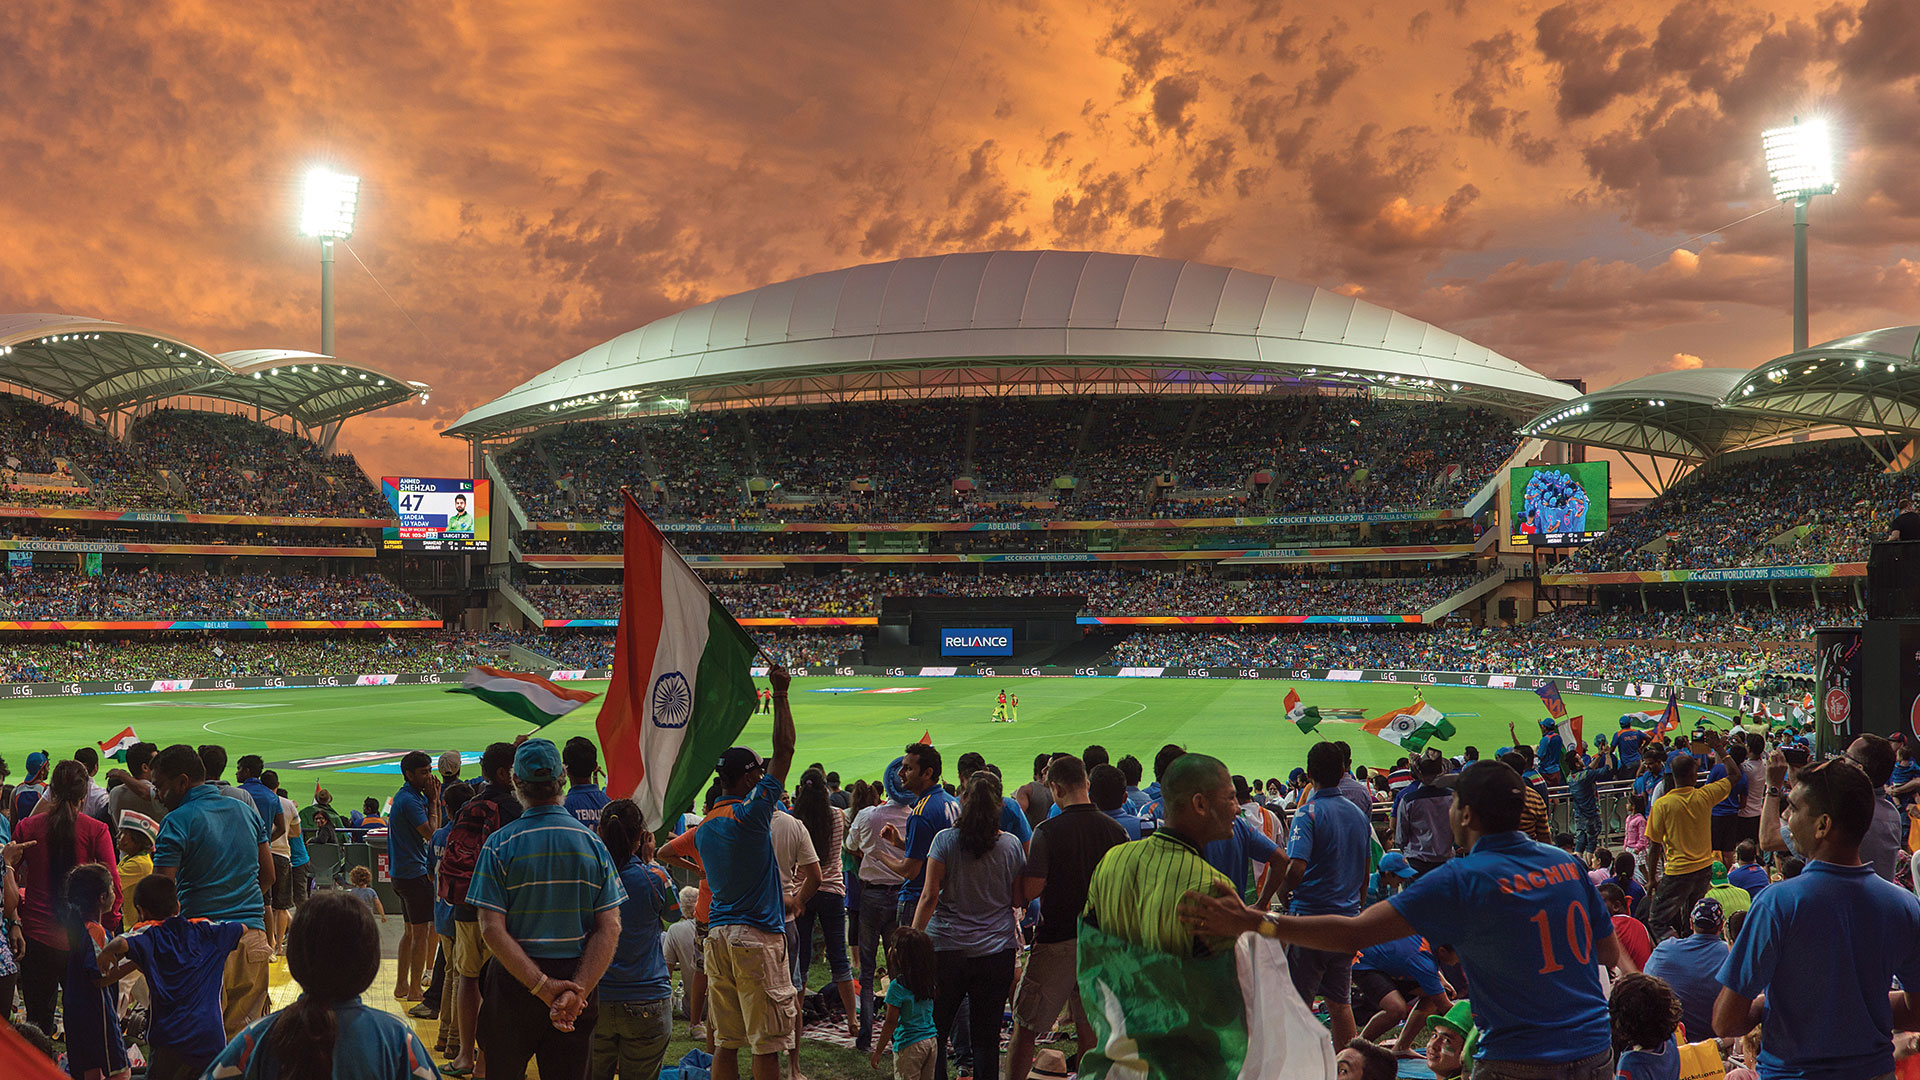 T20 World Cup bonanza for Adelaide